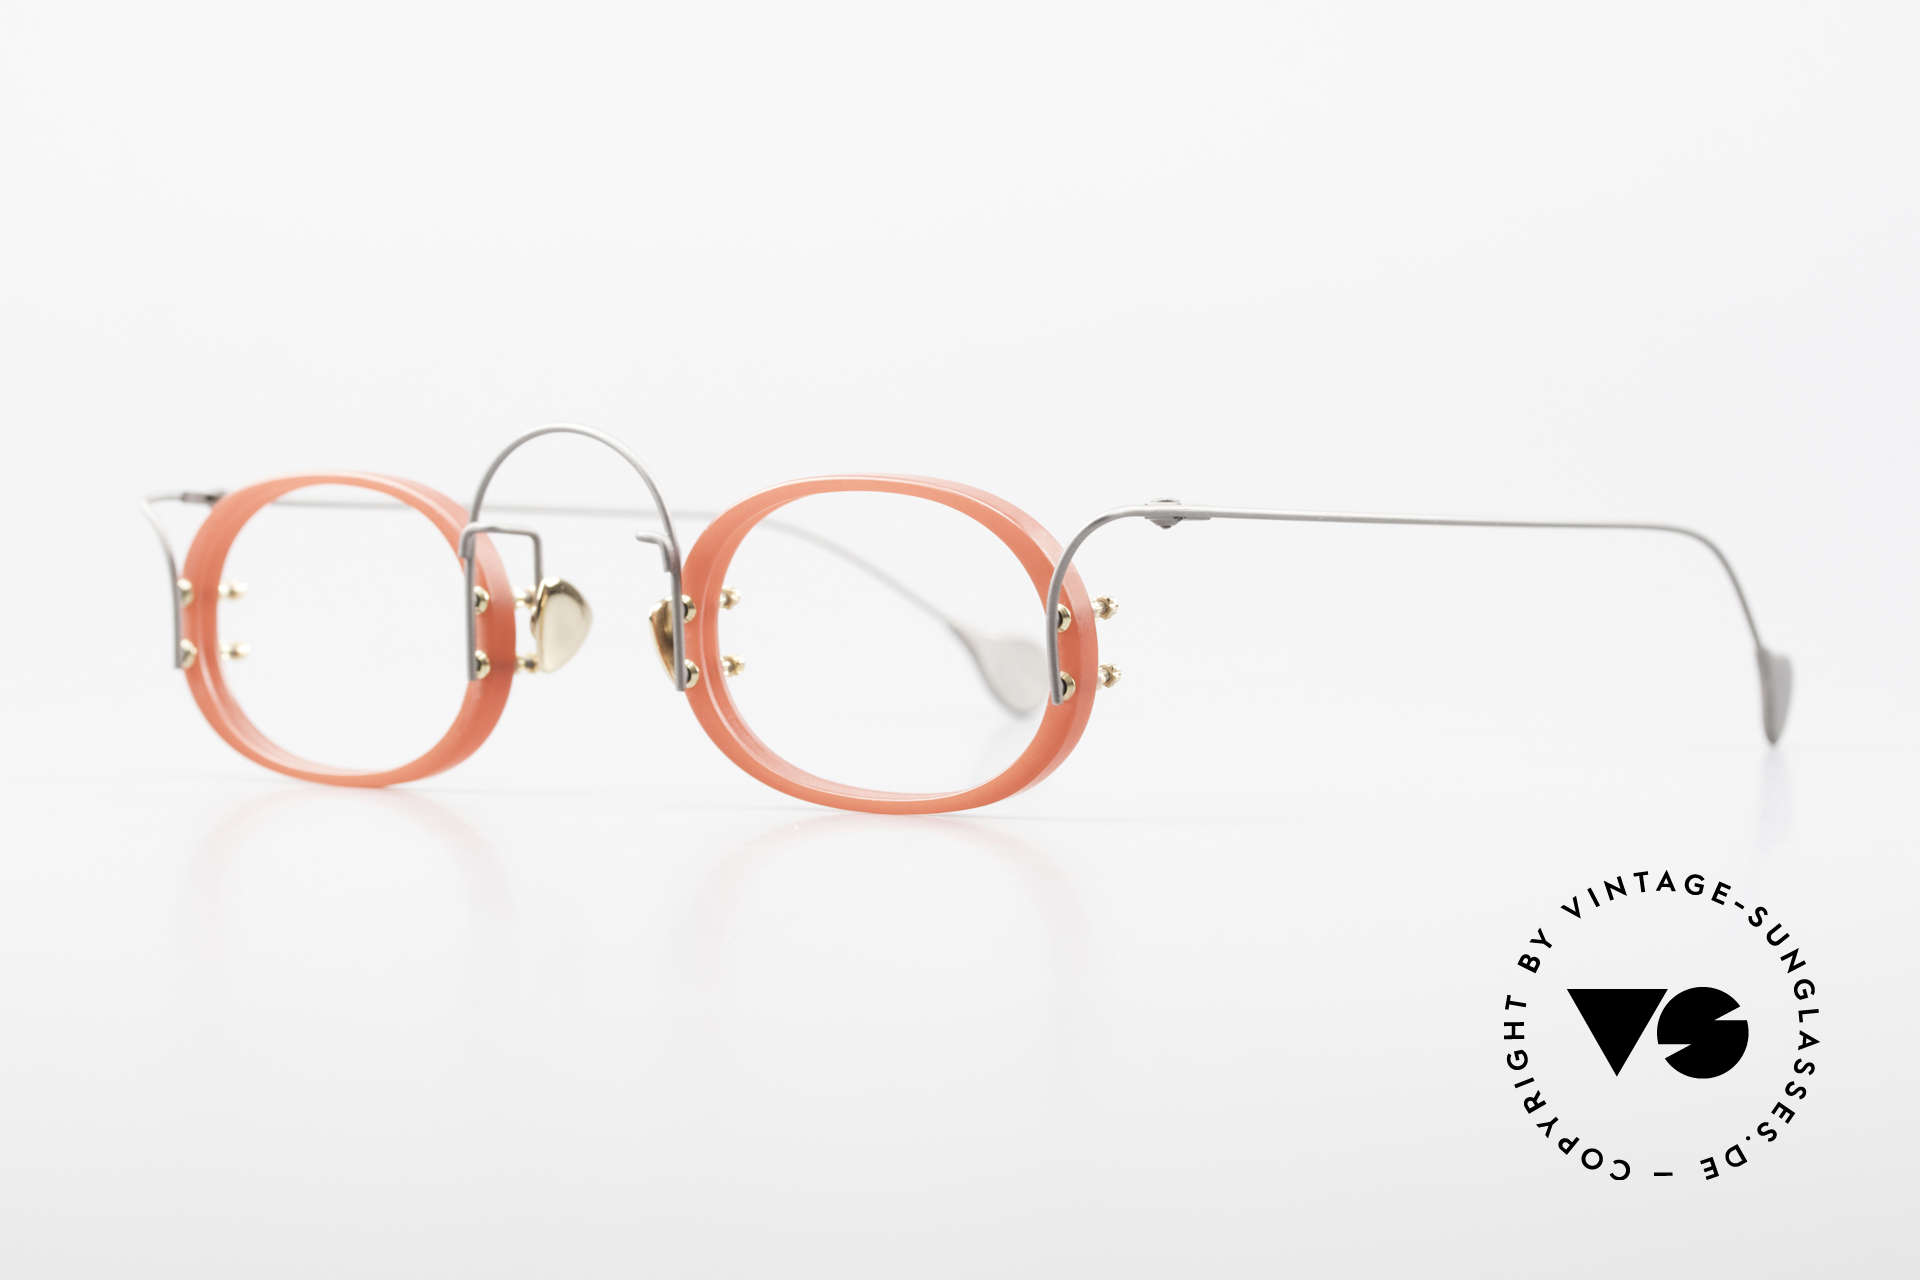 Paul Chiol 13 Designer Art Glasses Vintage, filigree and cleverly devised design; simply chichi, Made for Men and Women